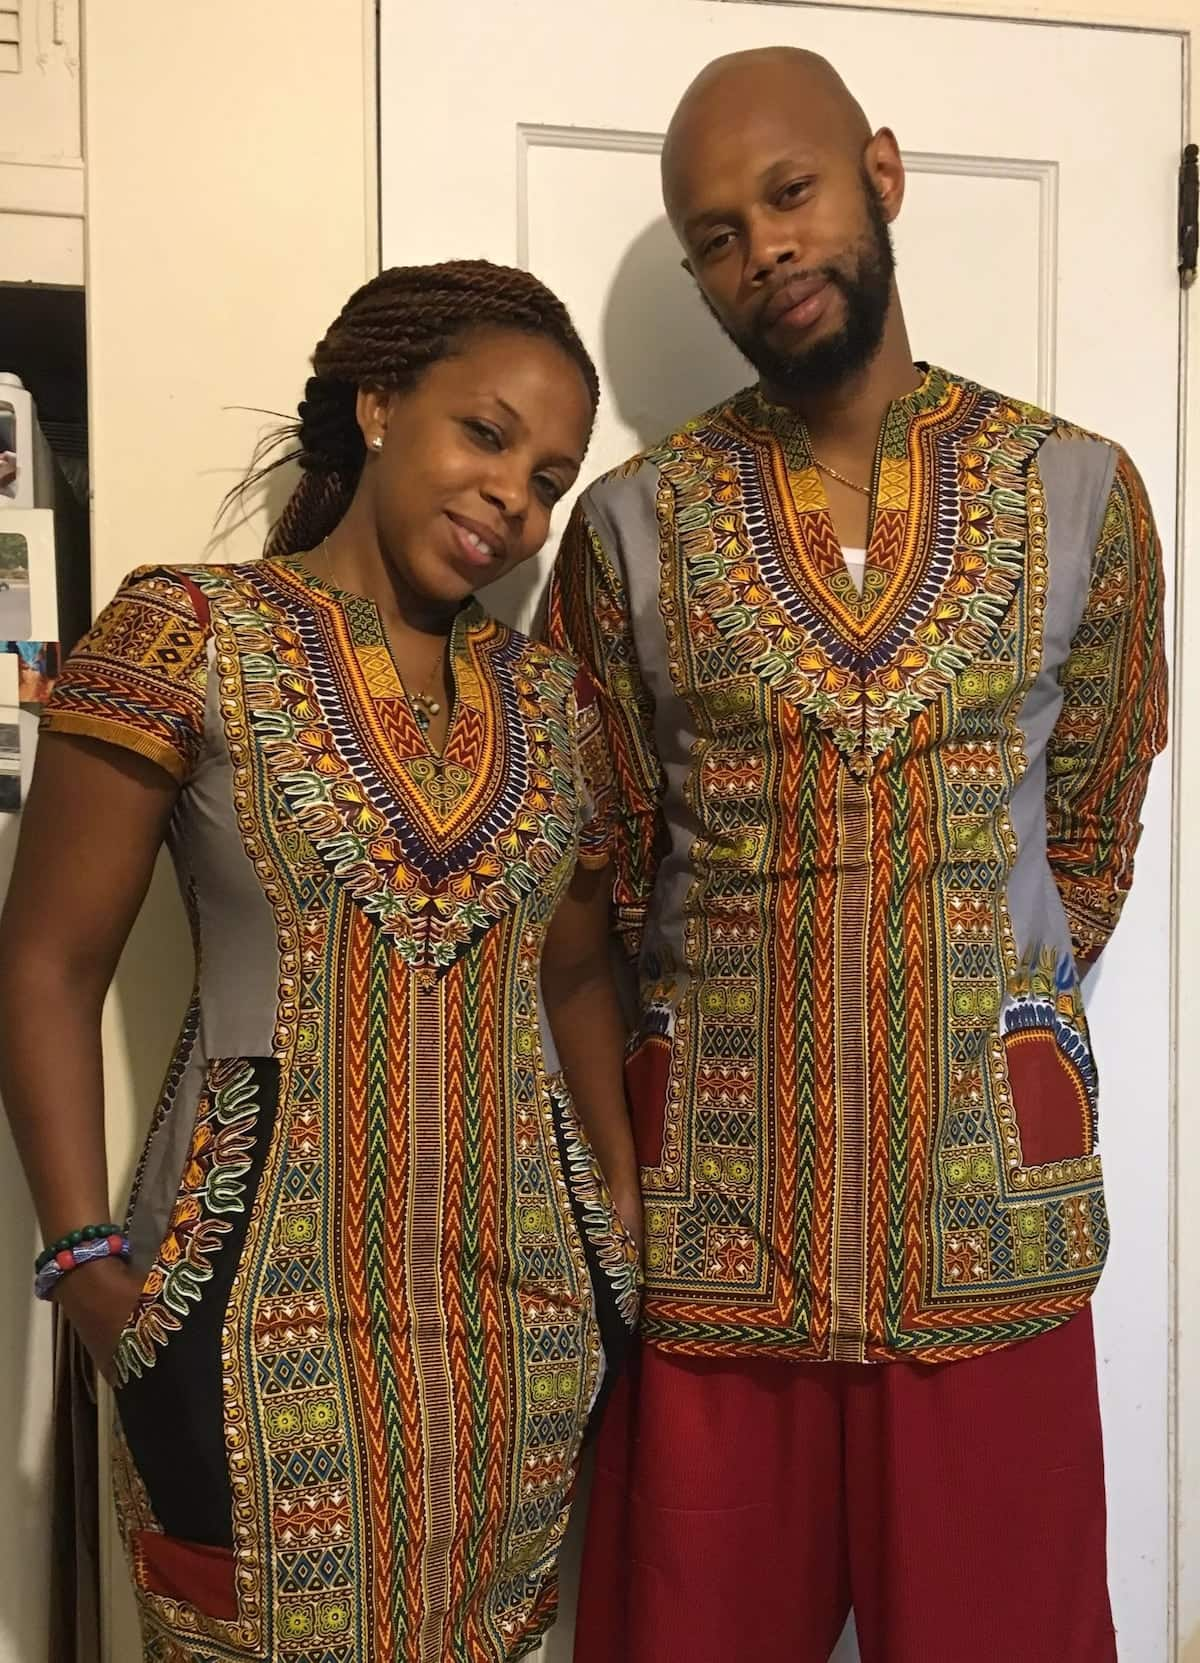 african dresses for couples, african outfits for couples, african couple outfits